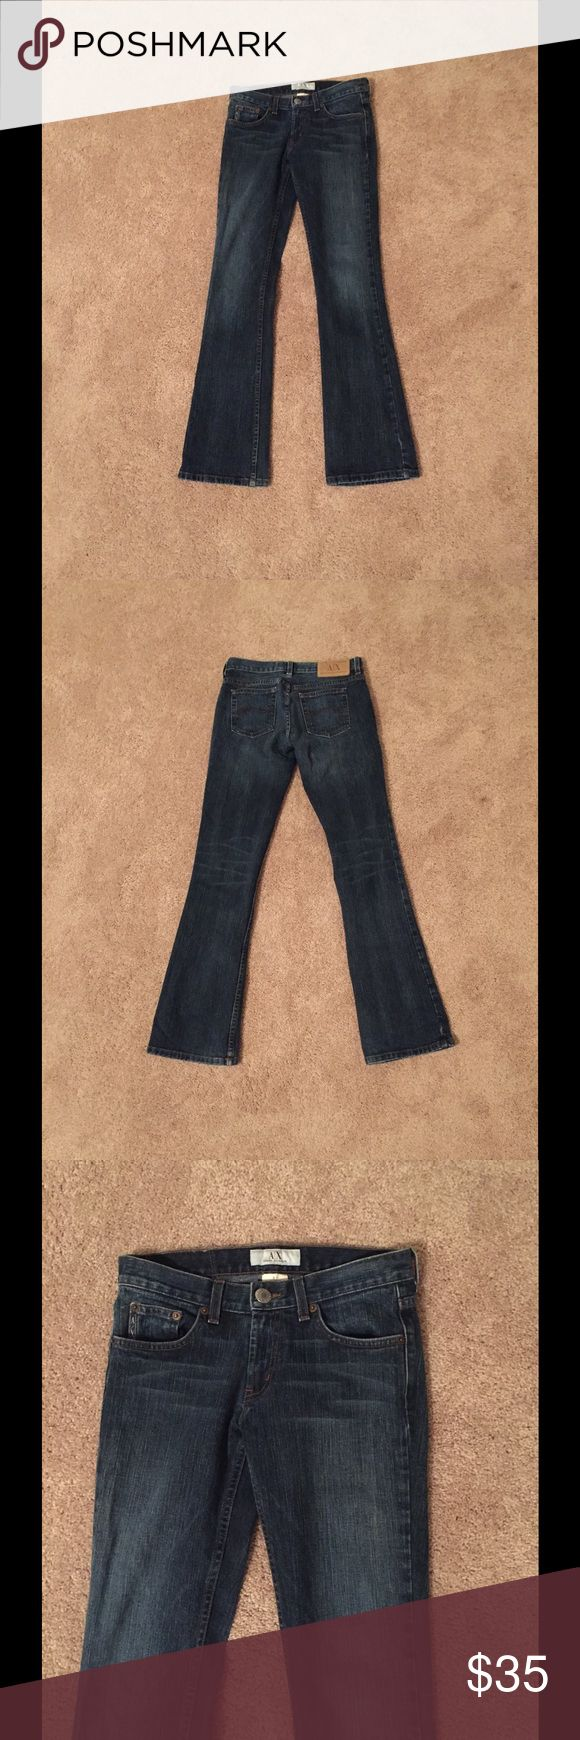 A/X Armani Exchange Helix Bootcut Jean Zip fly with button closure, 5-pocket, stone washed. Made in USA. 98% cotton, 2% Lycra. Machine wash cold. SIZE IS 0 SHORT. A/X Armani Exchange Jeans Boot Cut